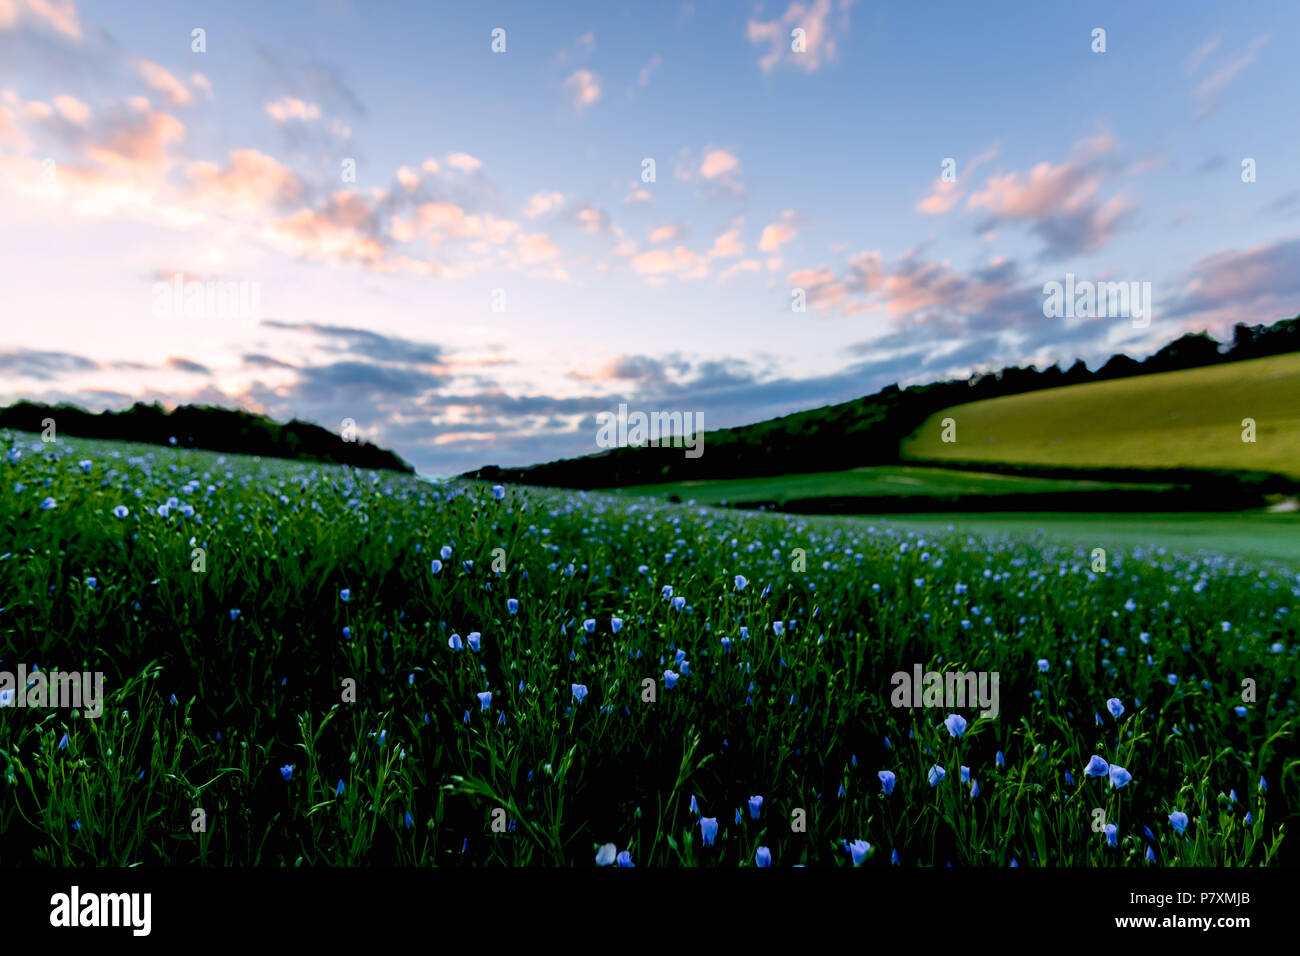 A field of flax flowers in the Bix Valley in the Chilterns - Stock Image